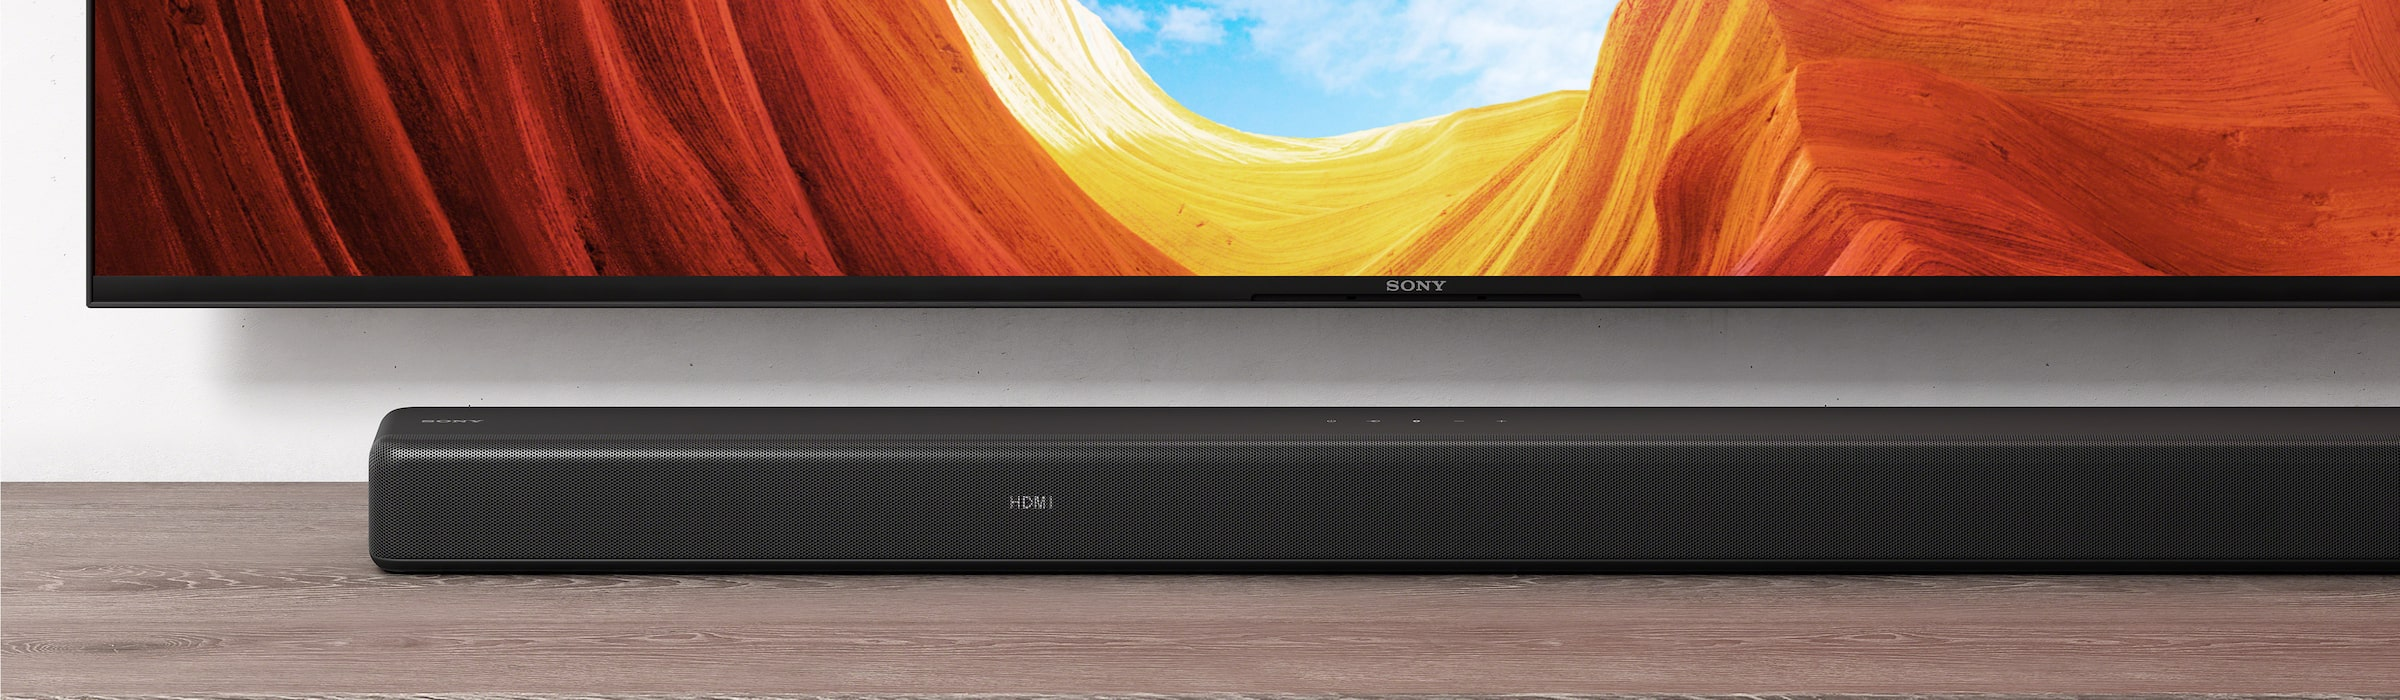 HT-G700-soundbar med Sony Bravia-TV